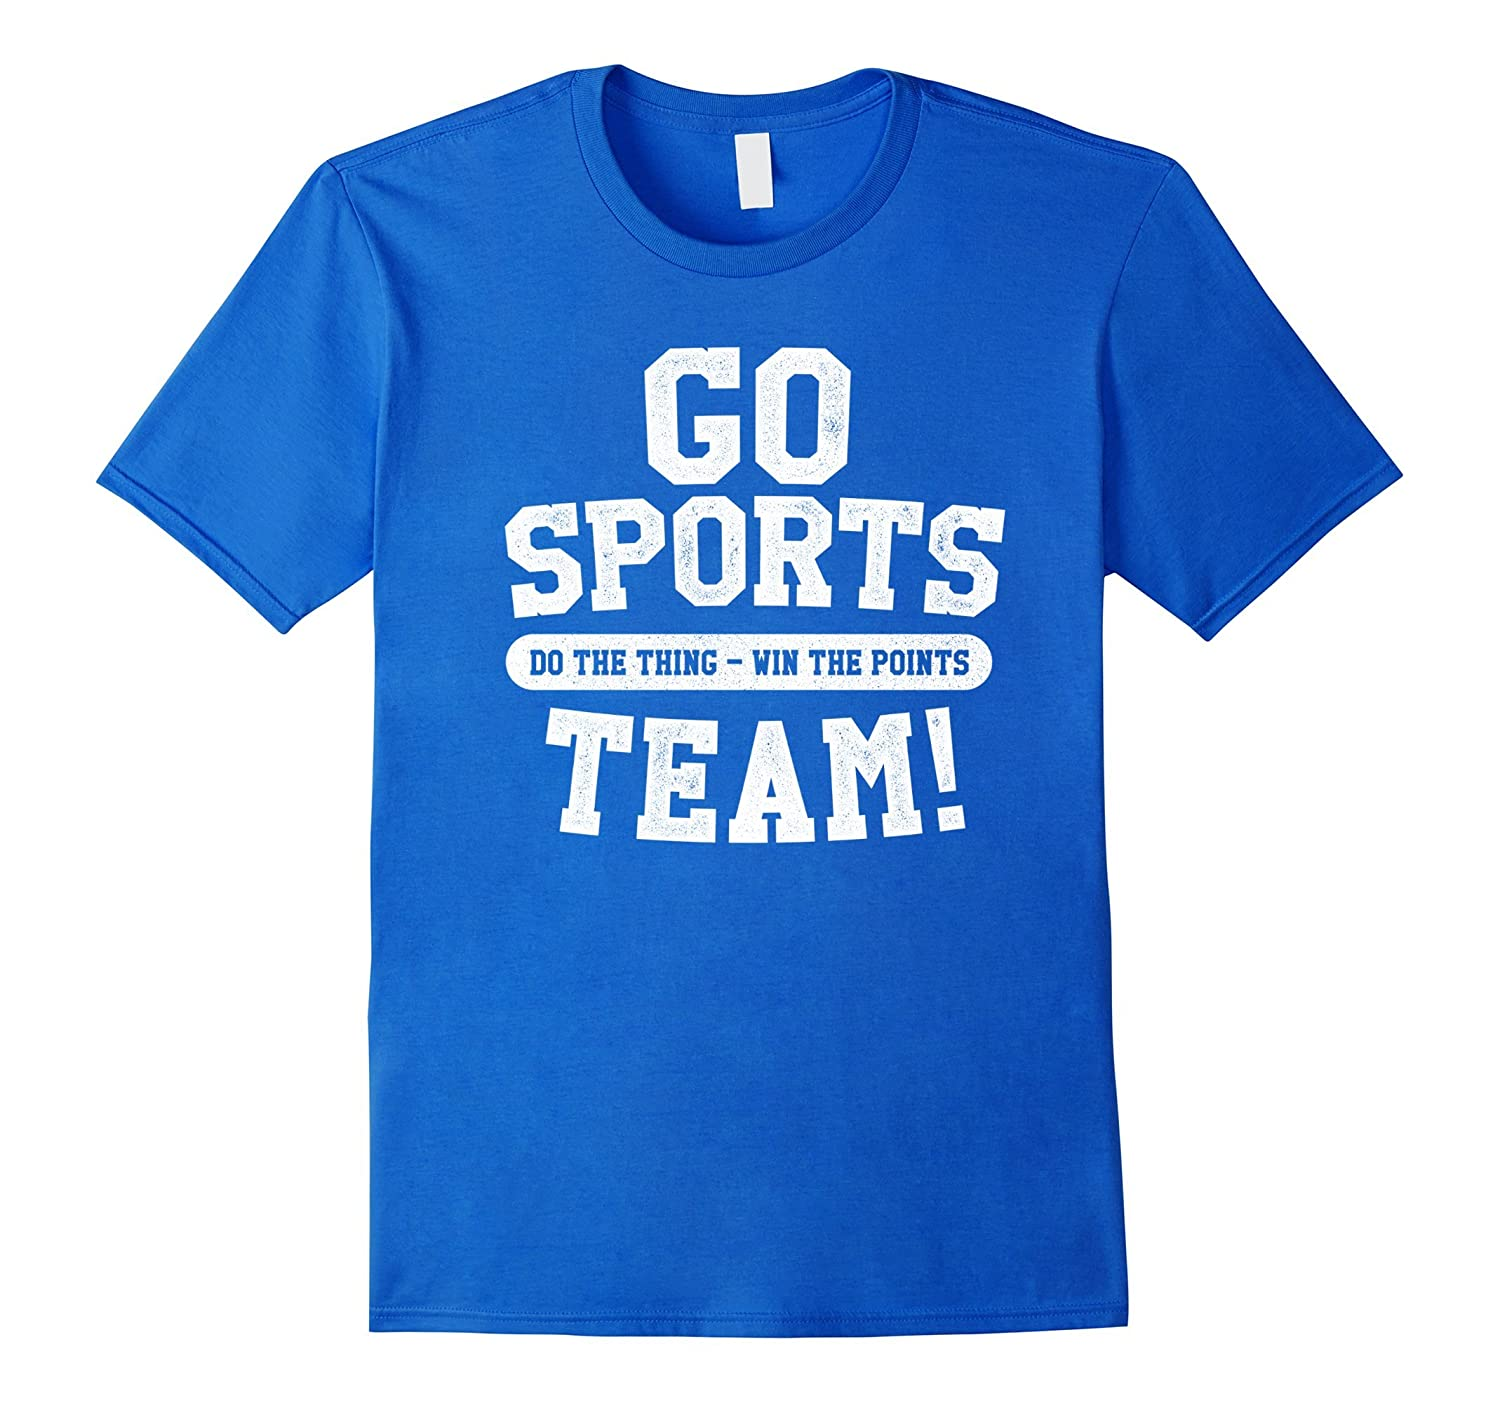 go sports team funny sports tshirttshirt � managatee